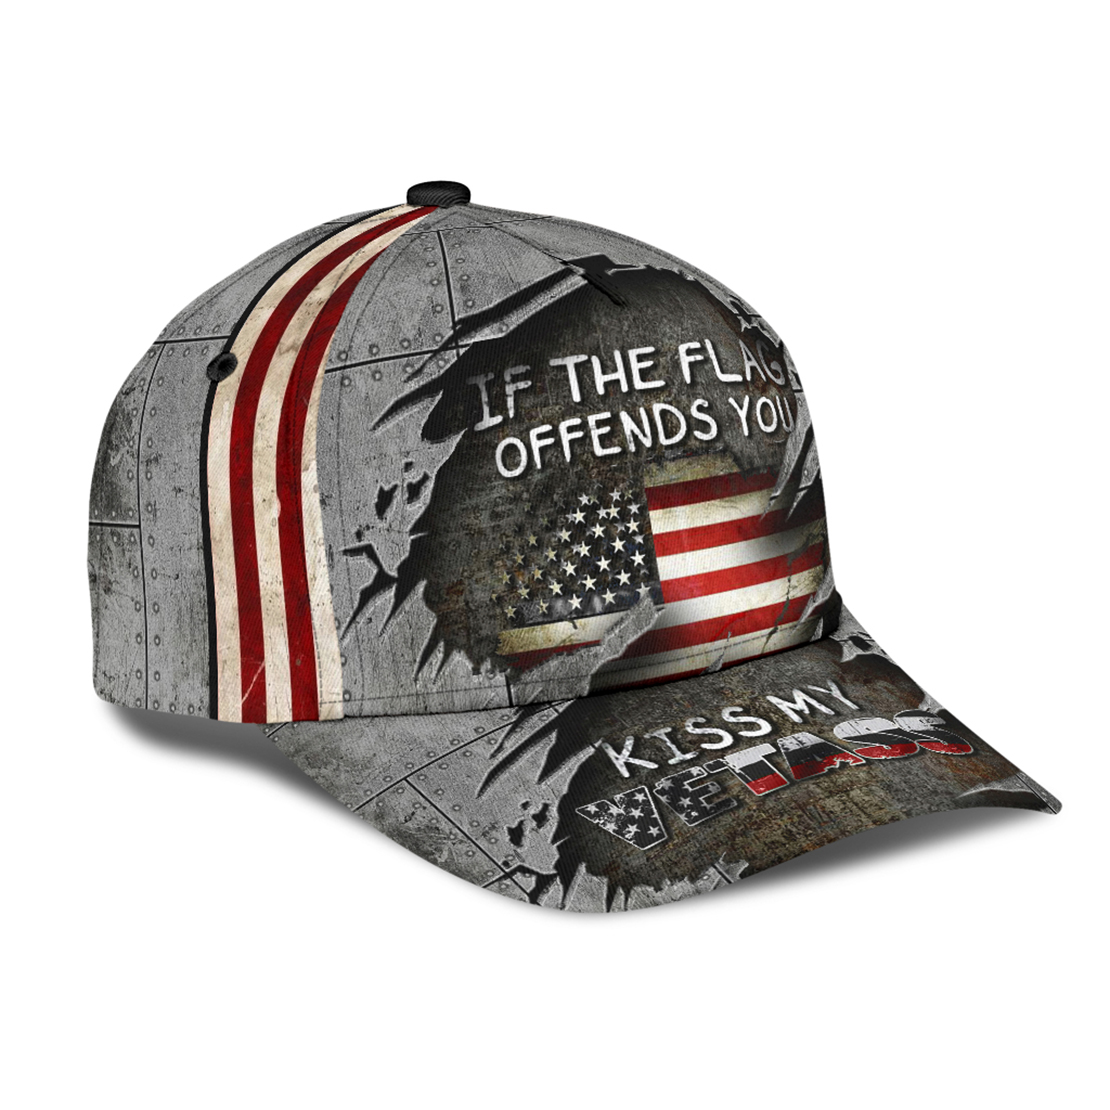 Veteran If the flag offends you kiss my vetass cap - Picture 2